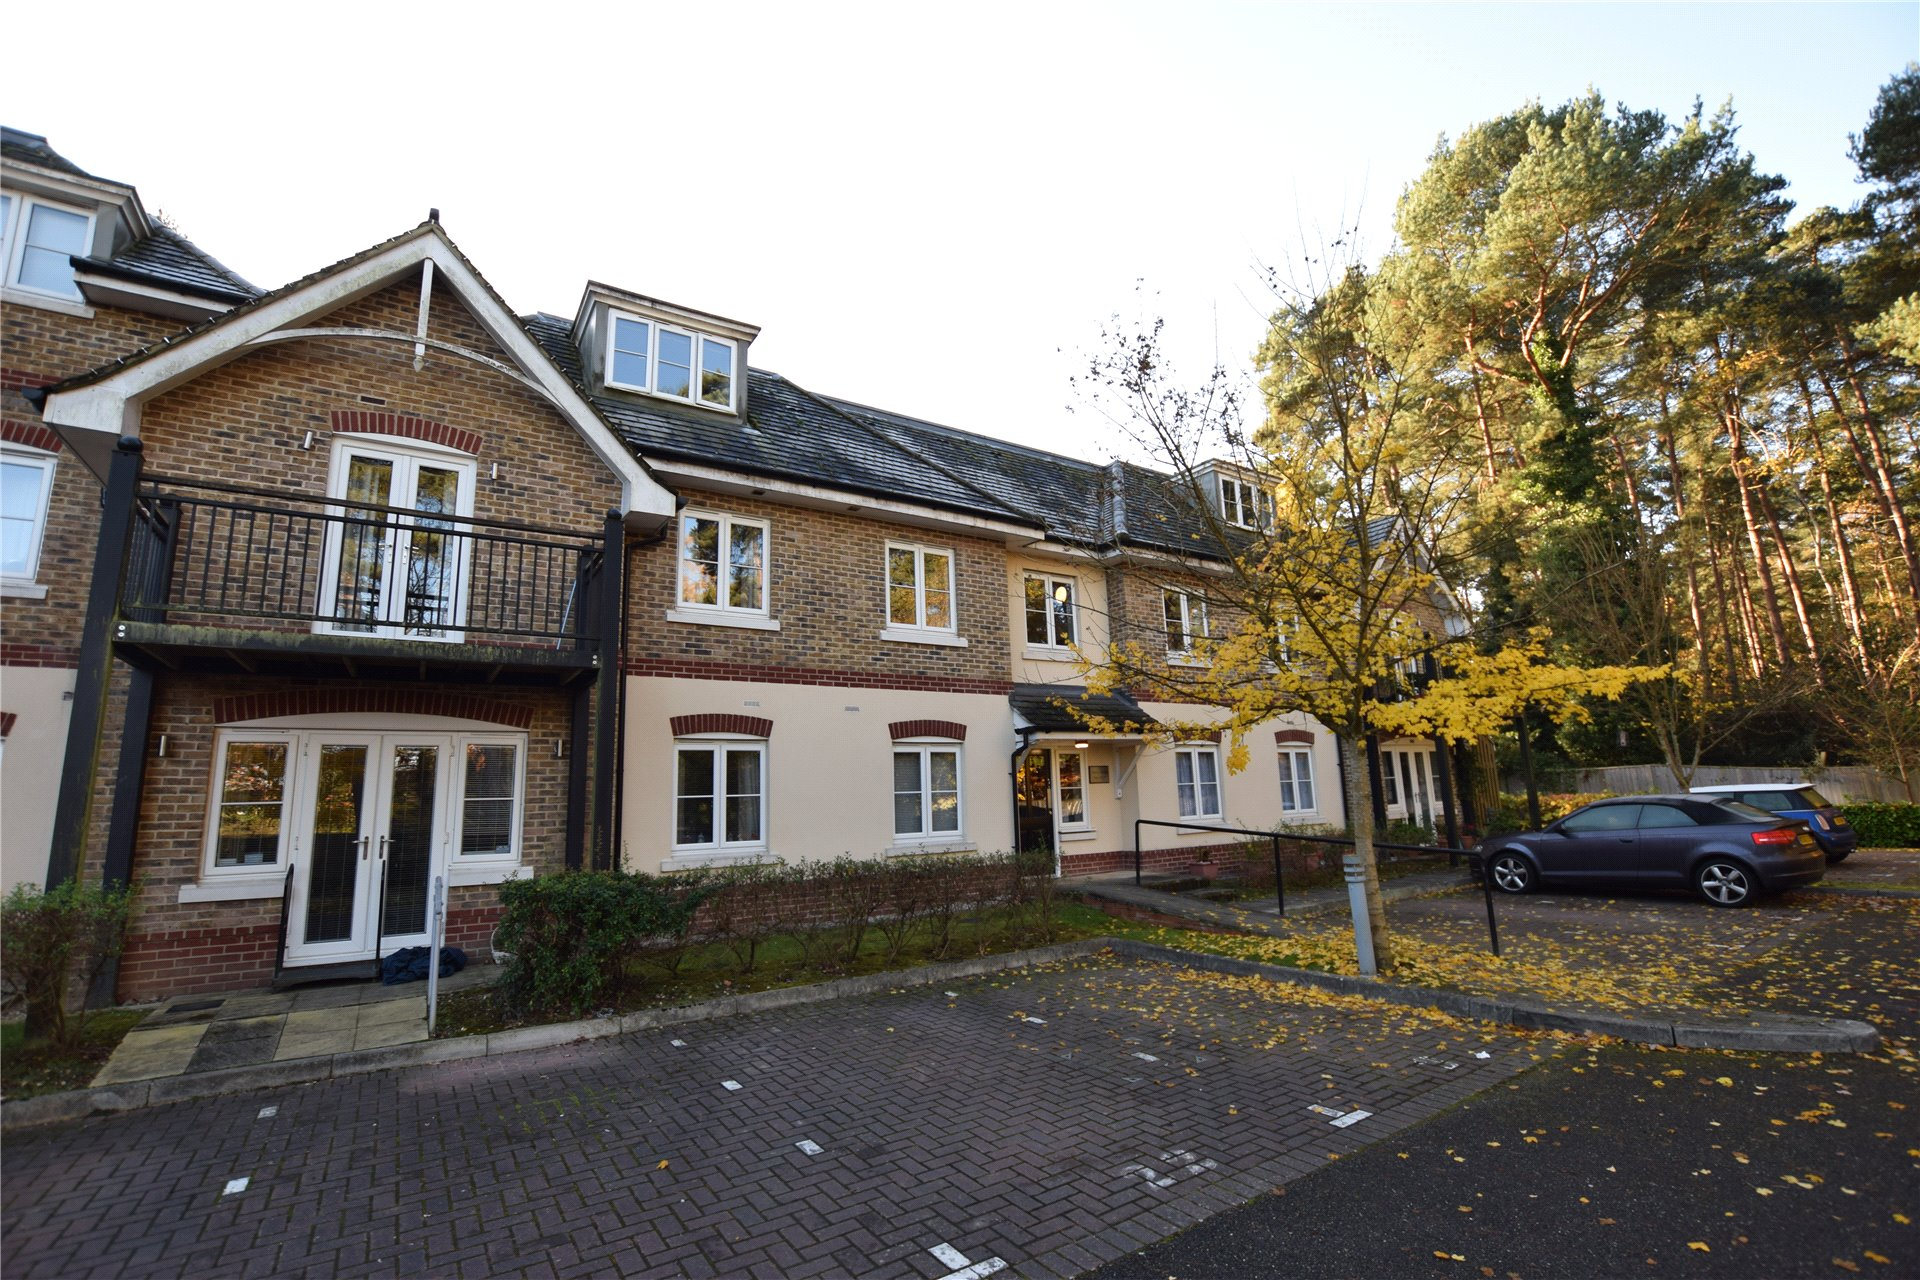 2 Bedrooms Apartment Flat for sale in Aston Grange, Ralphs Ride, Bracknell, Berkshire, RG12